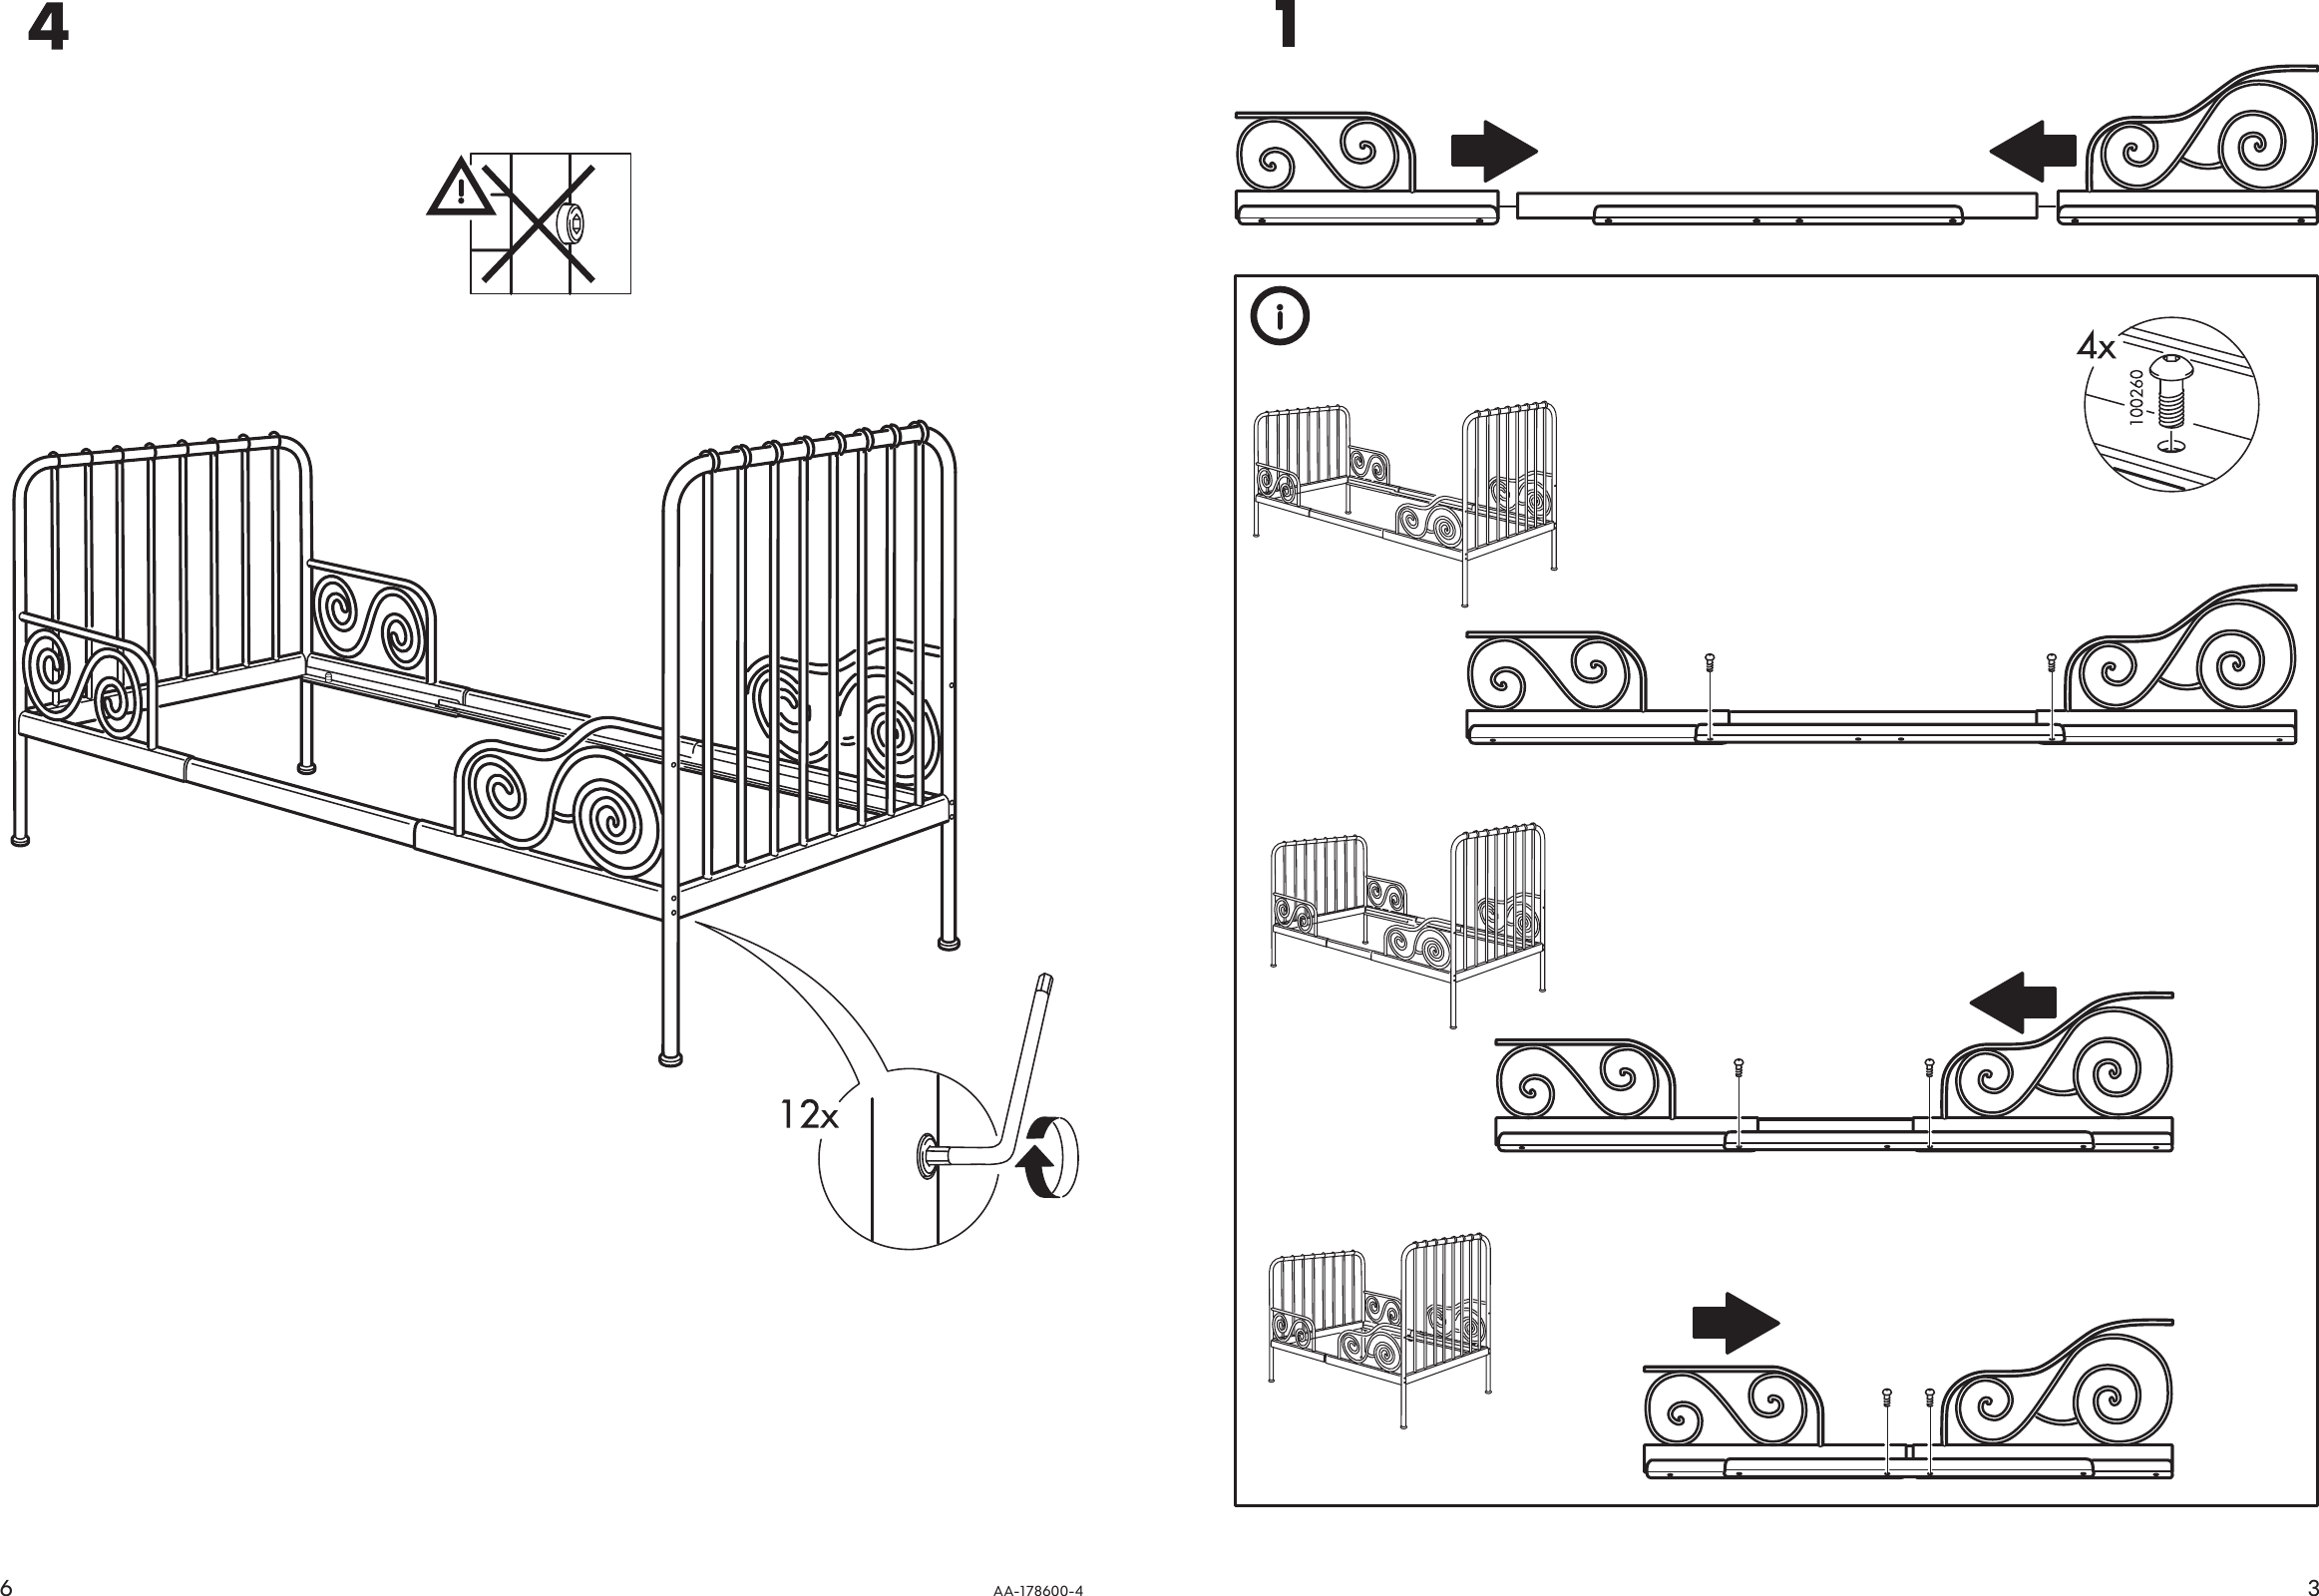 Ikea Minnen Extendable Bed Frame 38x75 Assembly Instruction